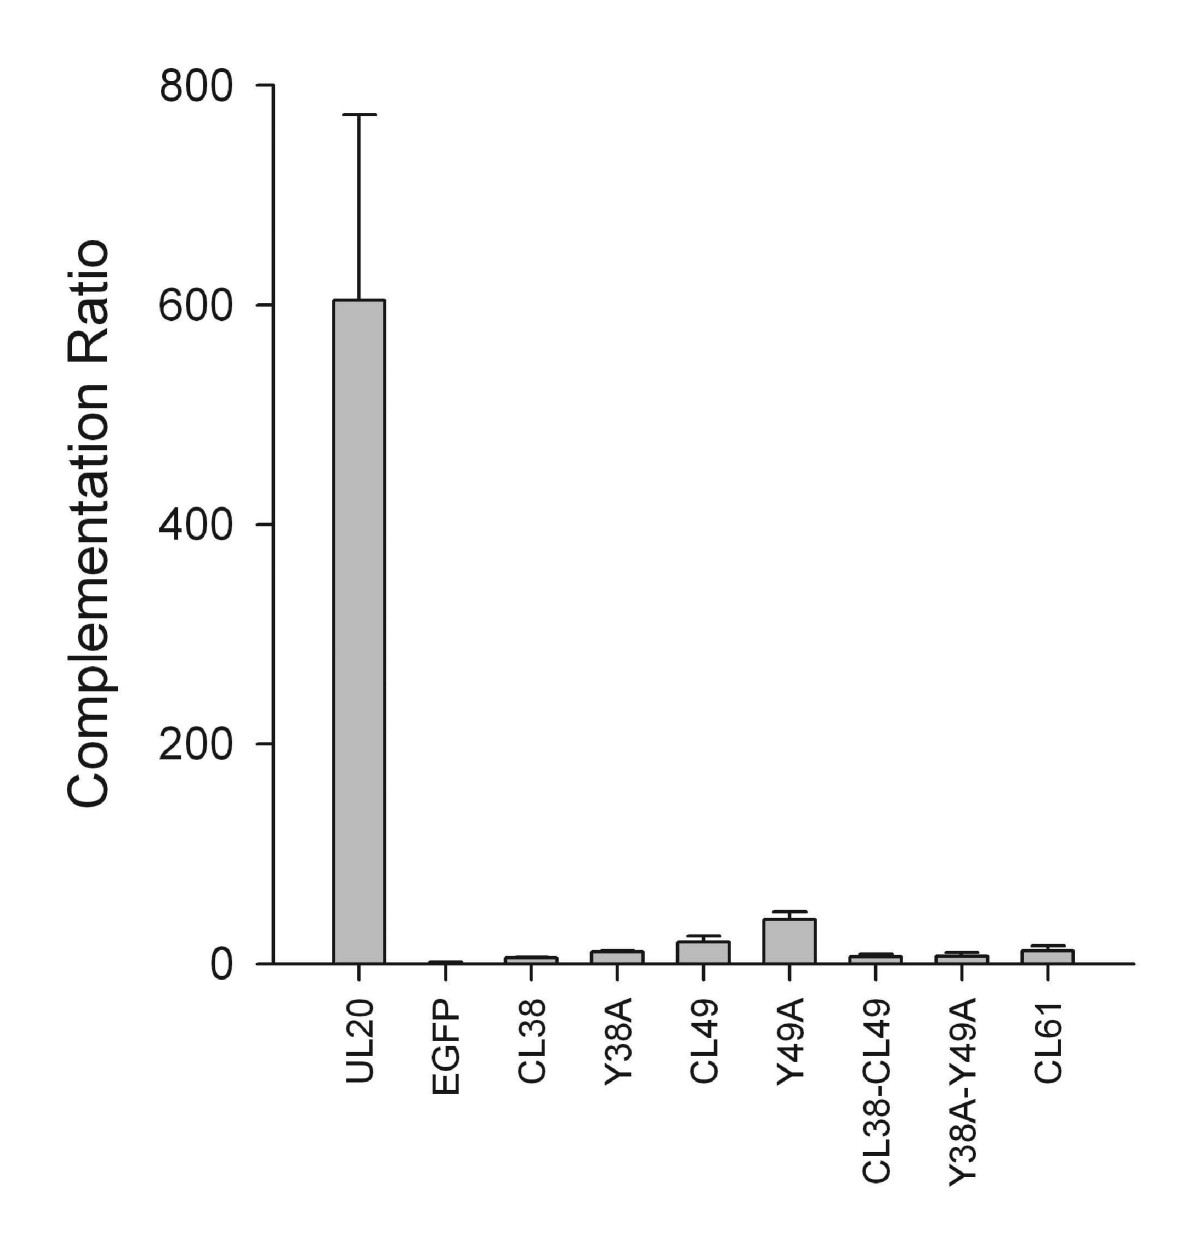 https://static-content.springer.com/image/art%3A10.1186%2F1743-422X-4-120/MediaObjects/12985_2007_Article_333_Fig2_HTML.jpg